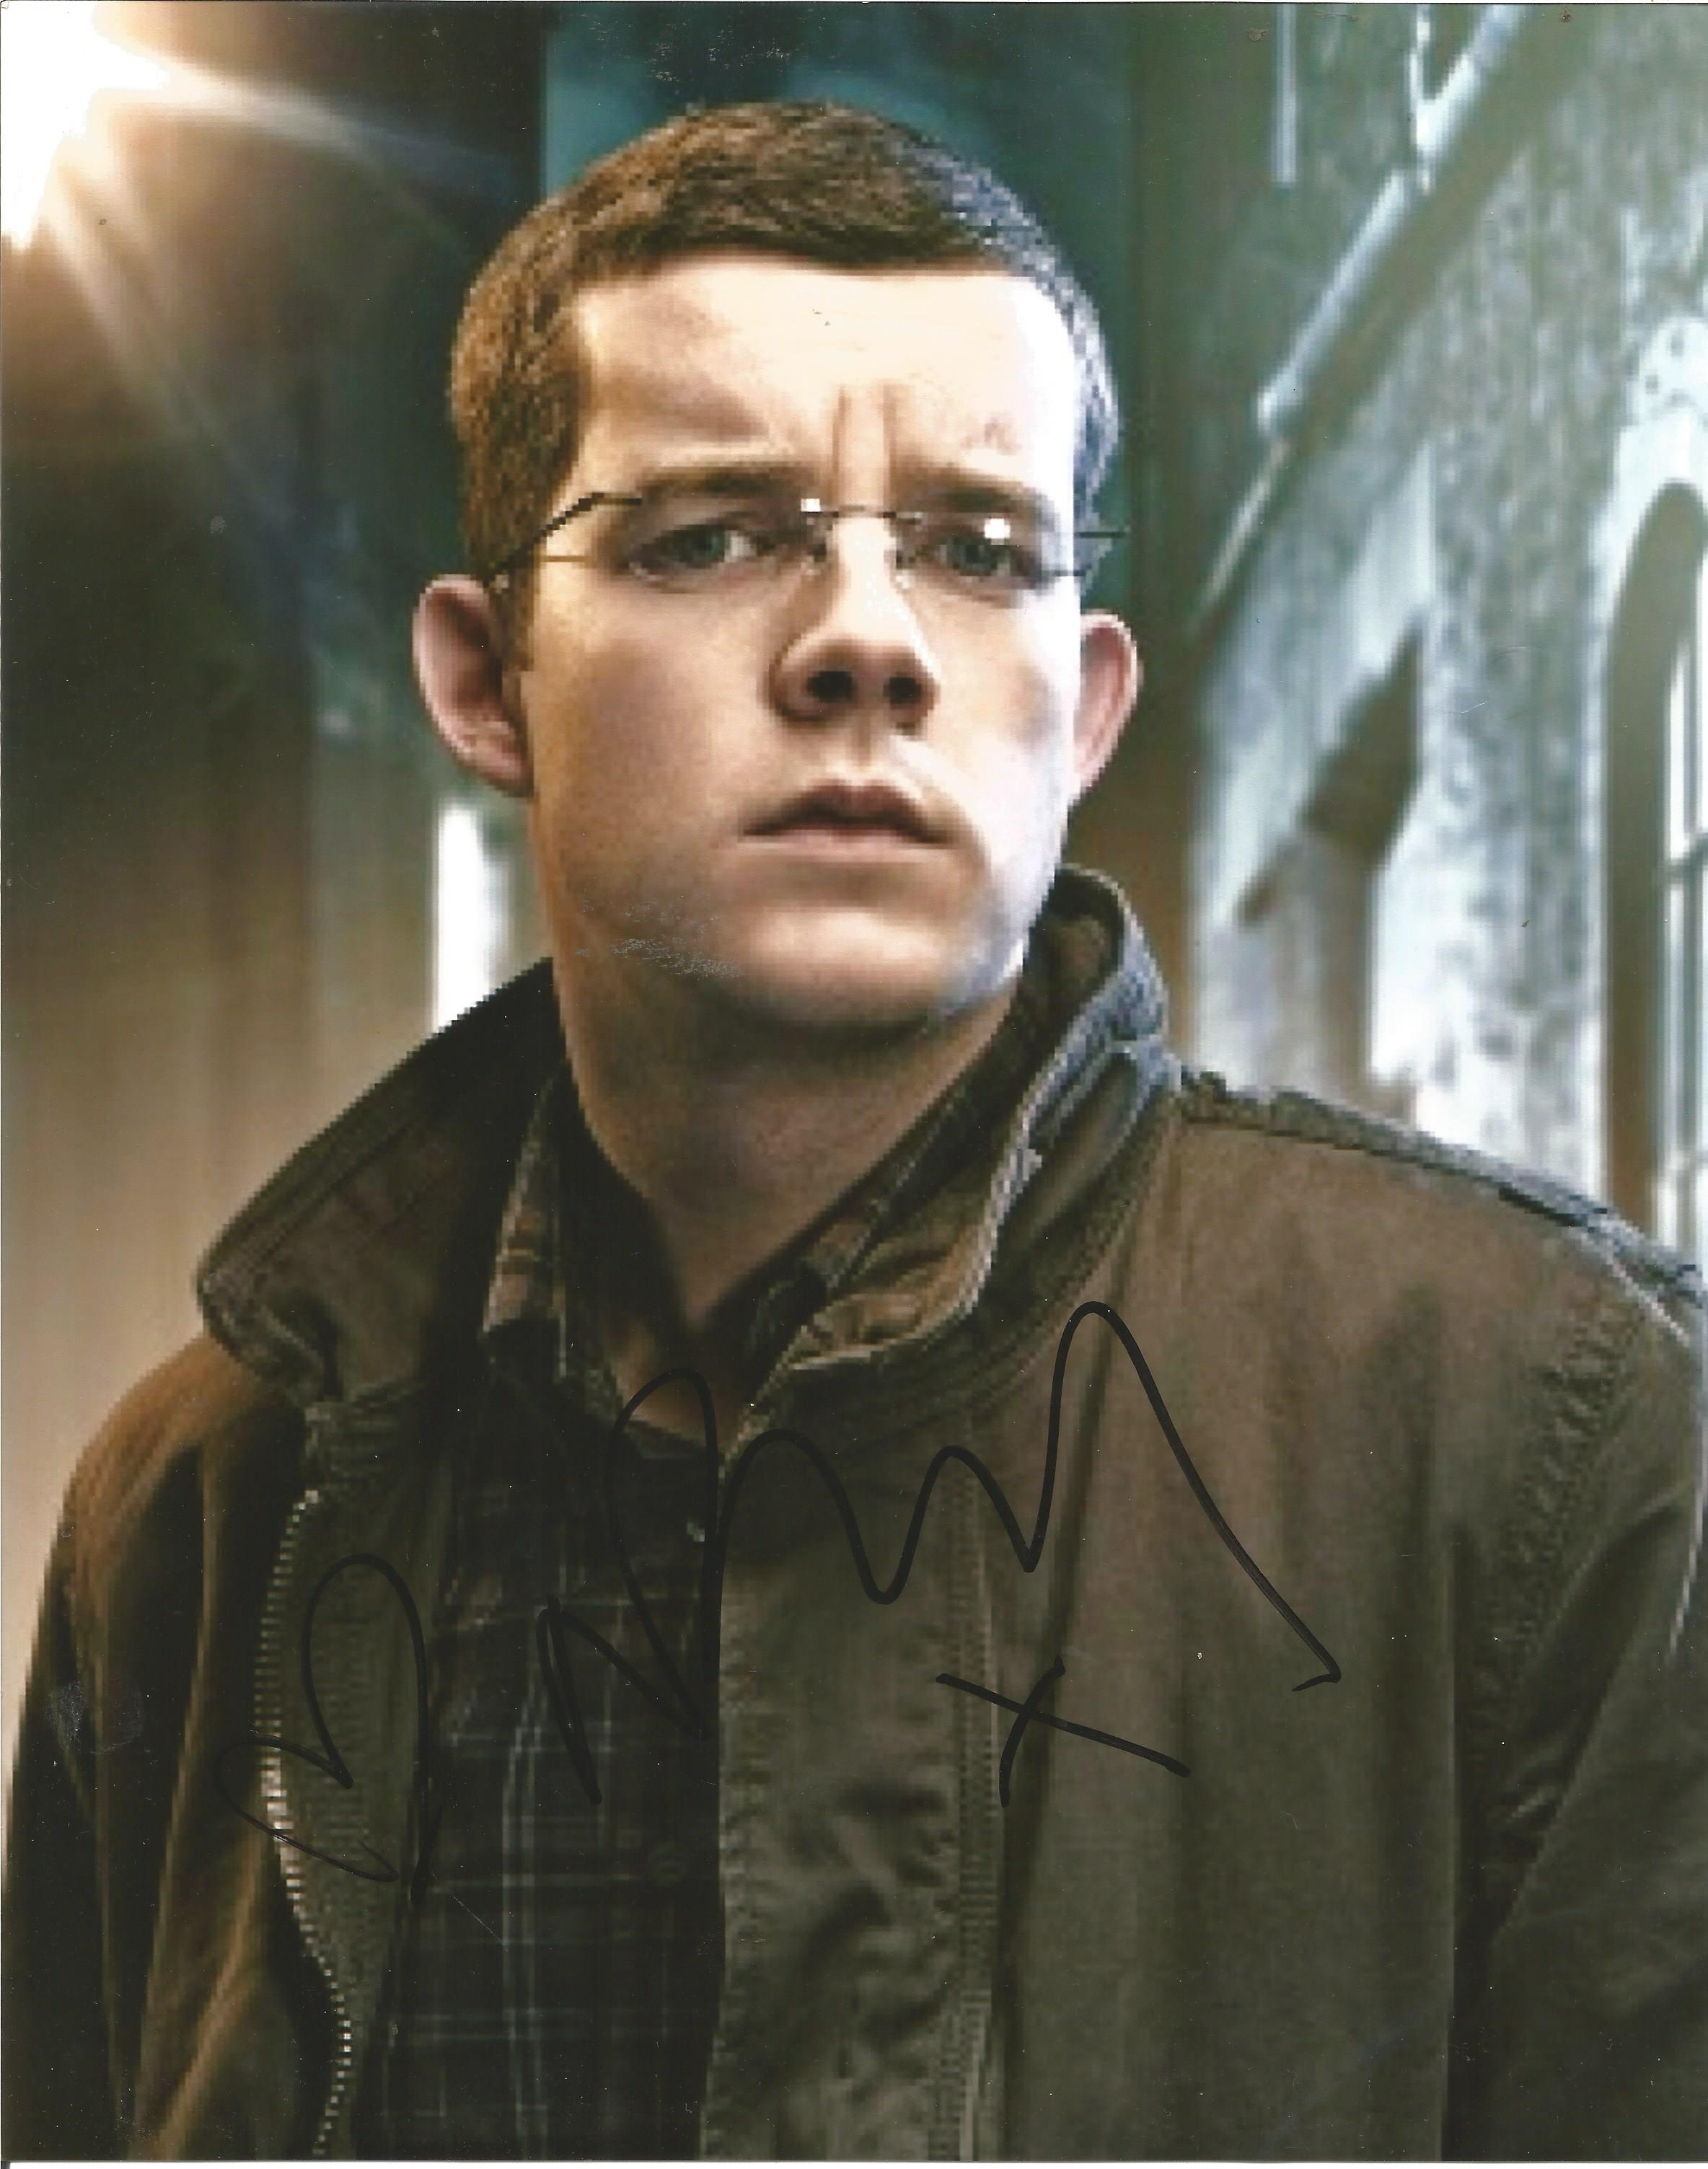 Russell Tovey signed 10x8 colour image featuring him in a pair of spectacles. Russell is a British